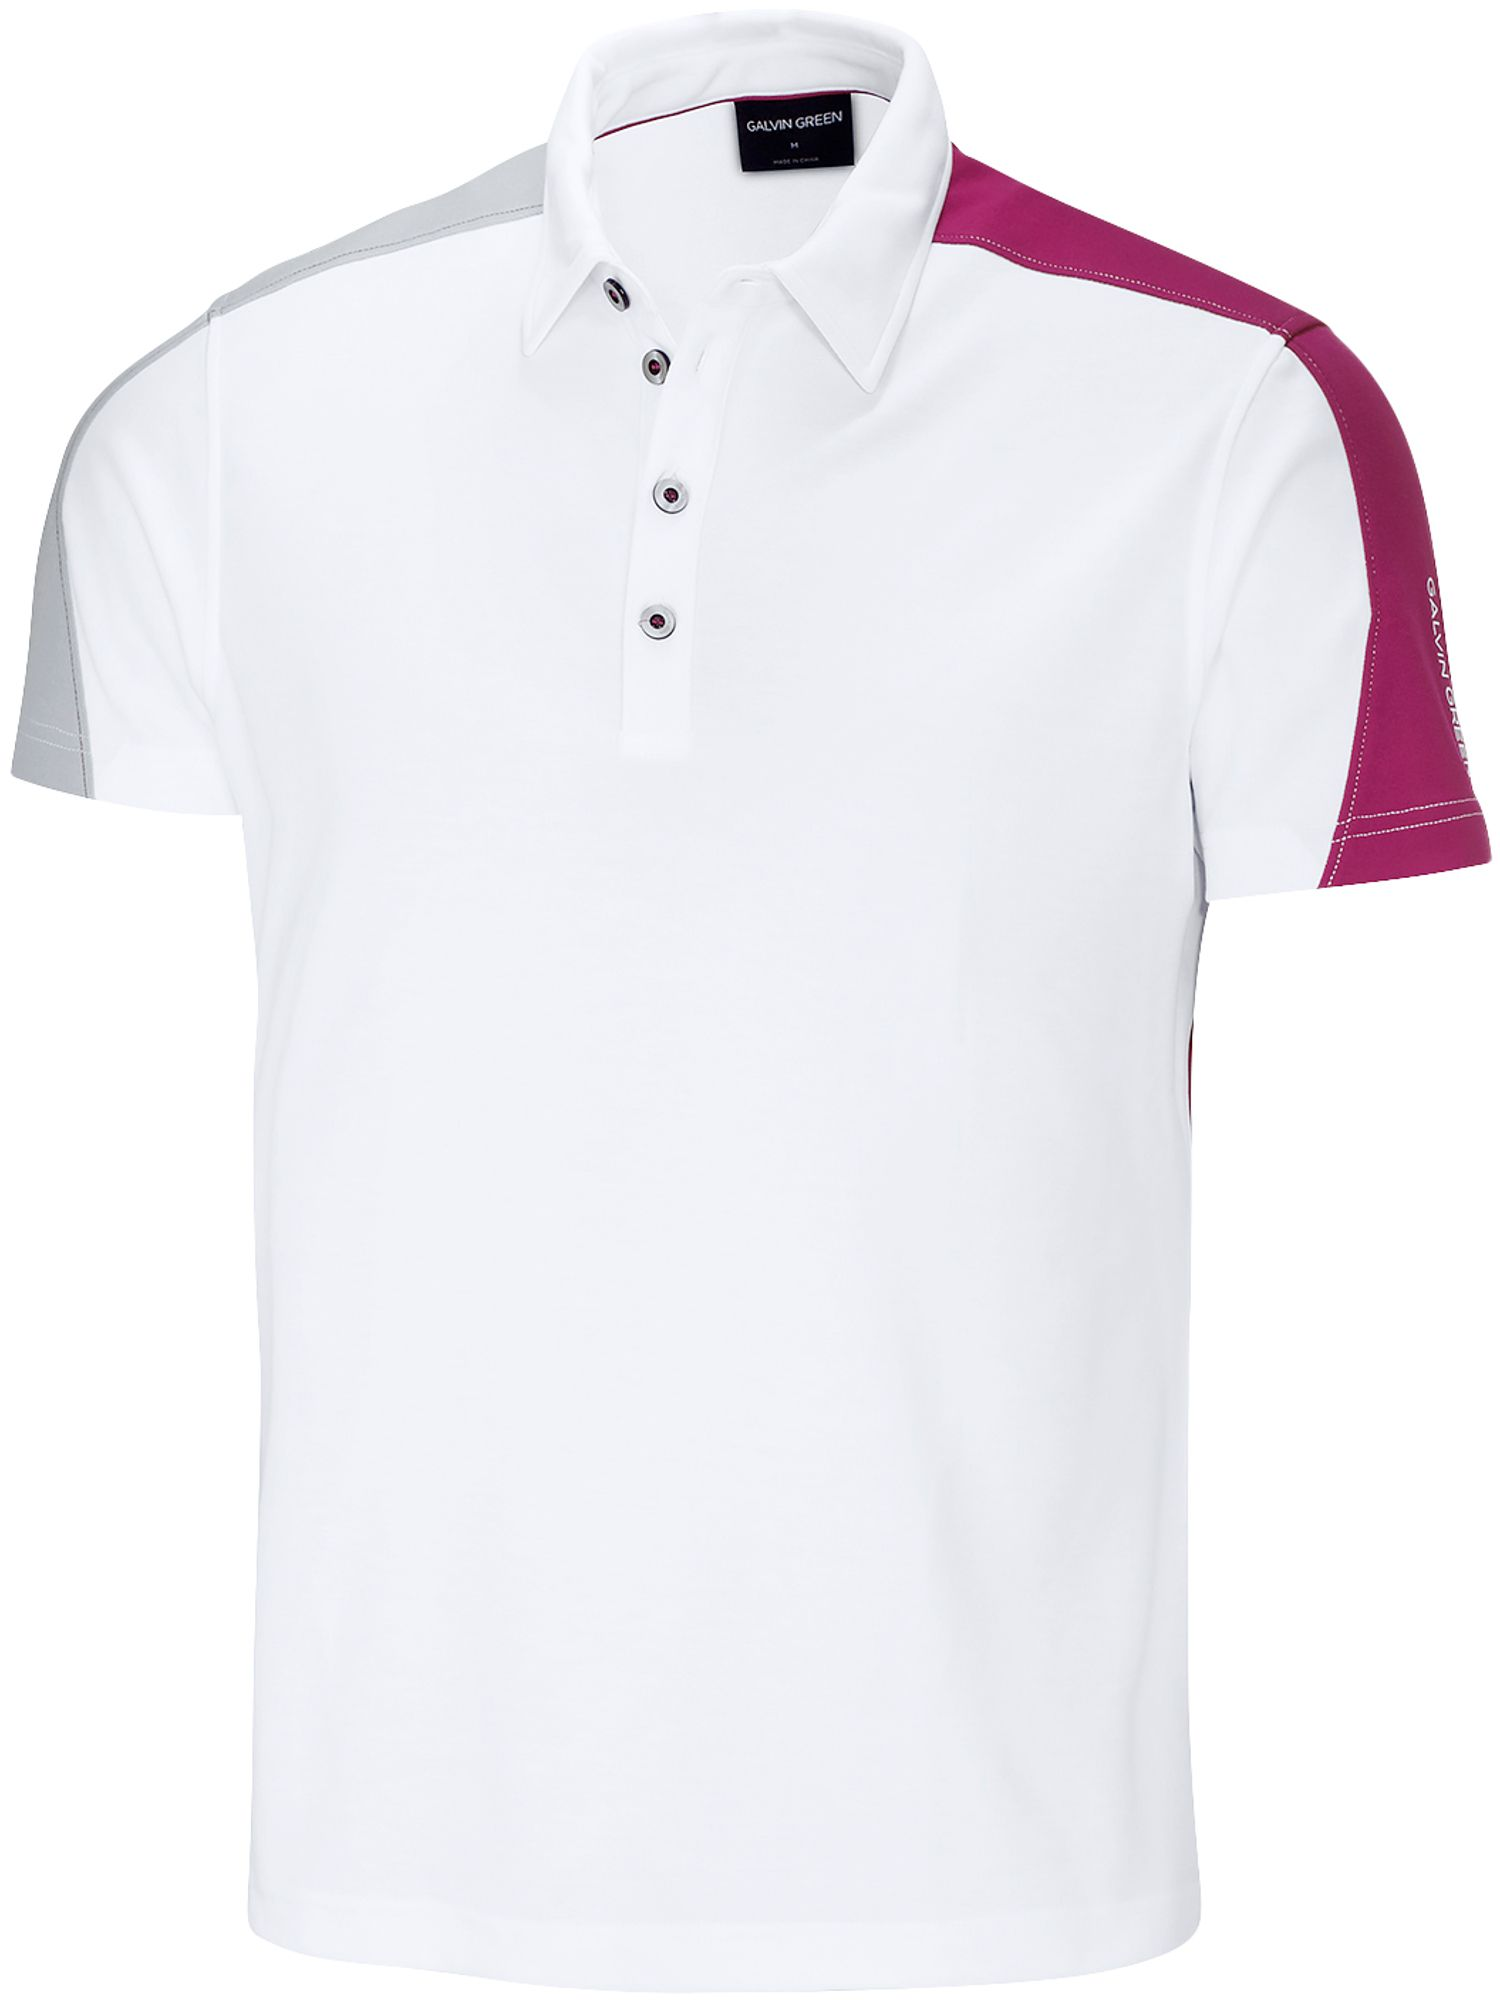 Men's Galvin Green Melvin Ventil8 Polo, White